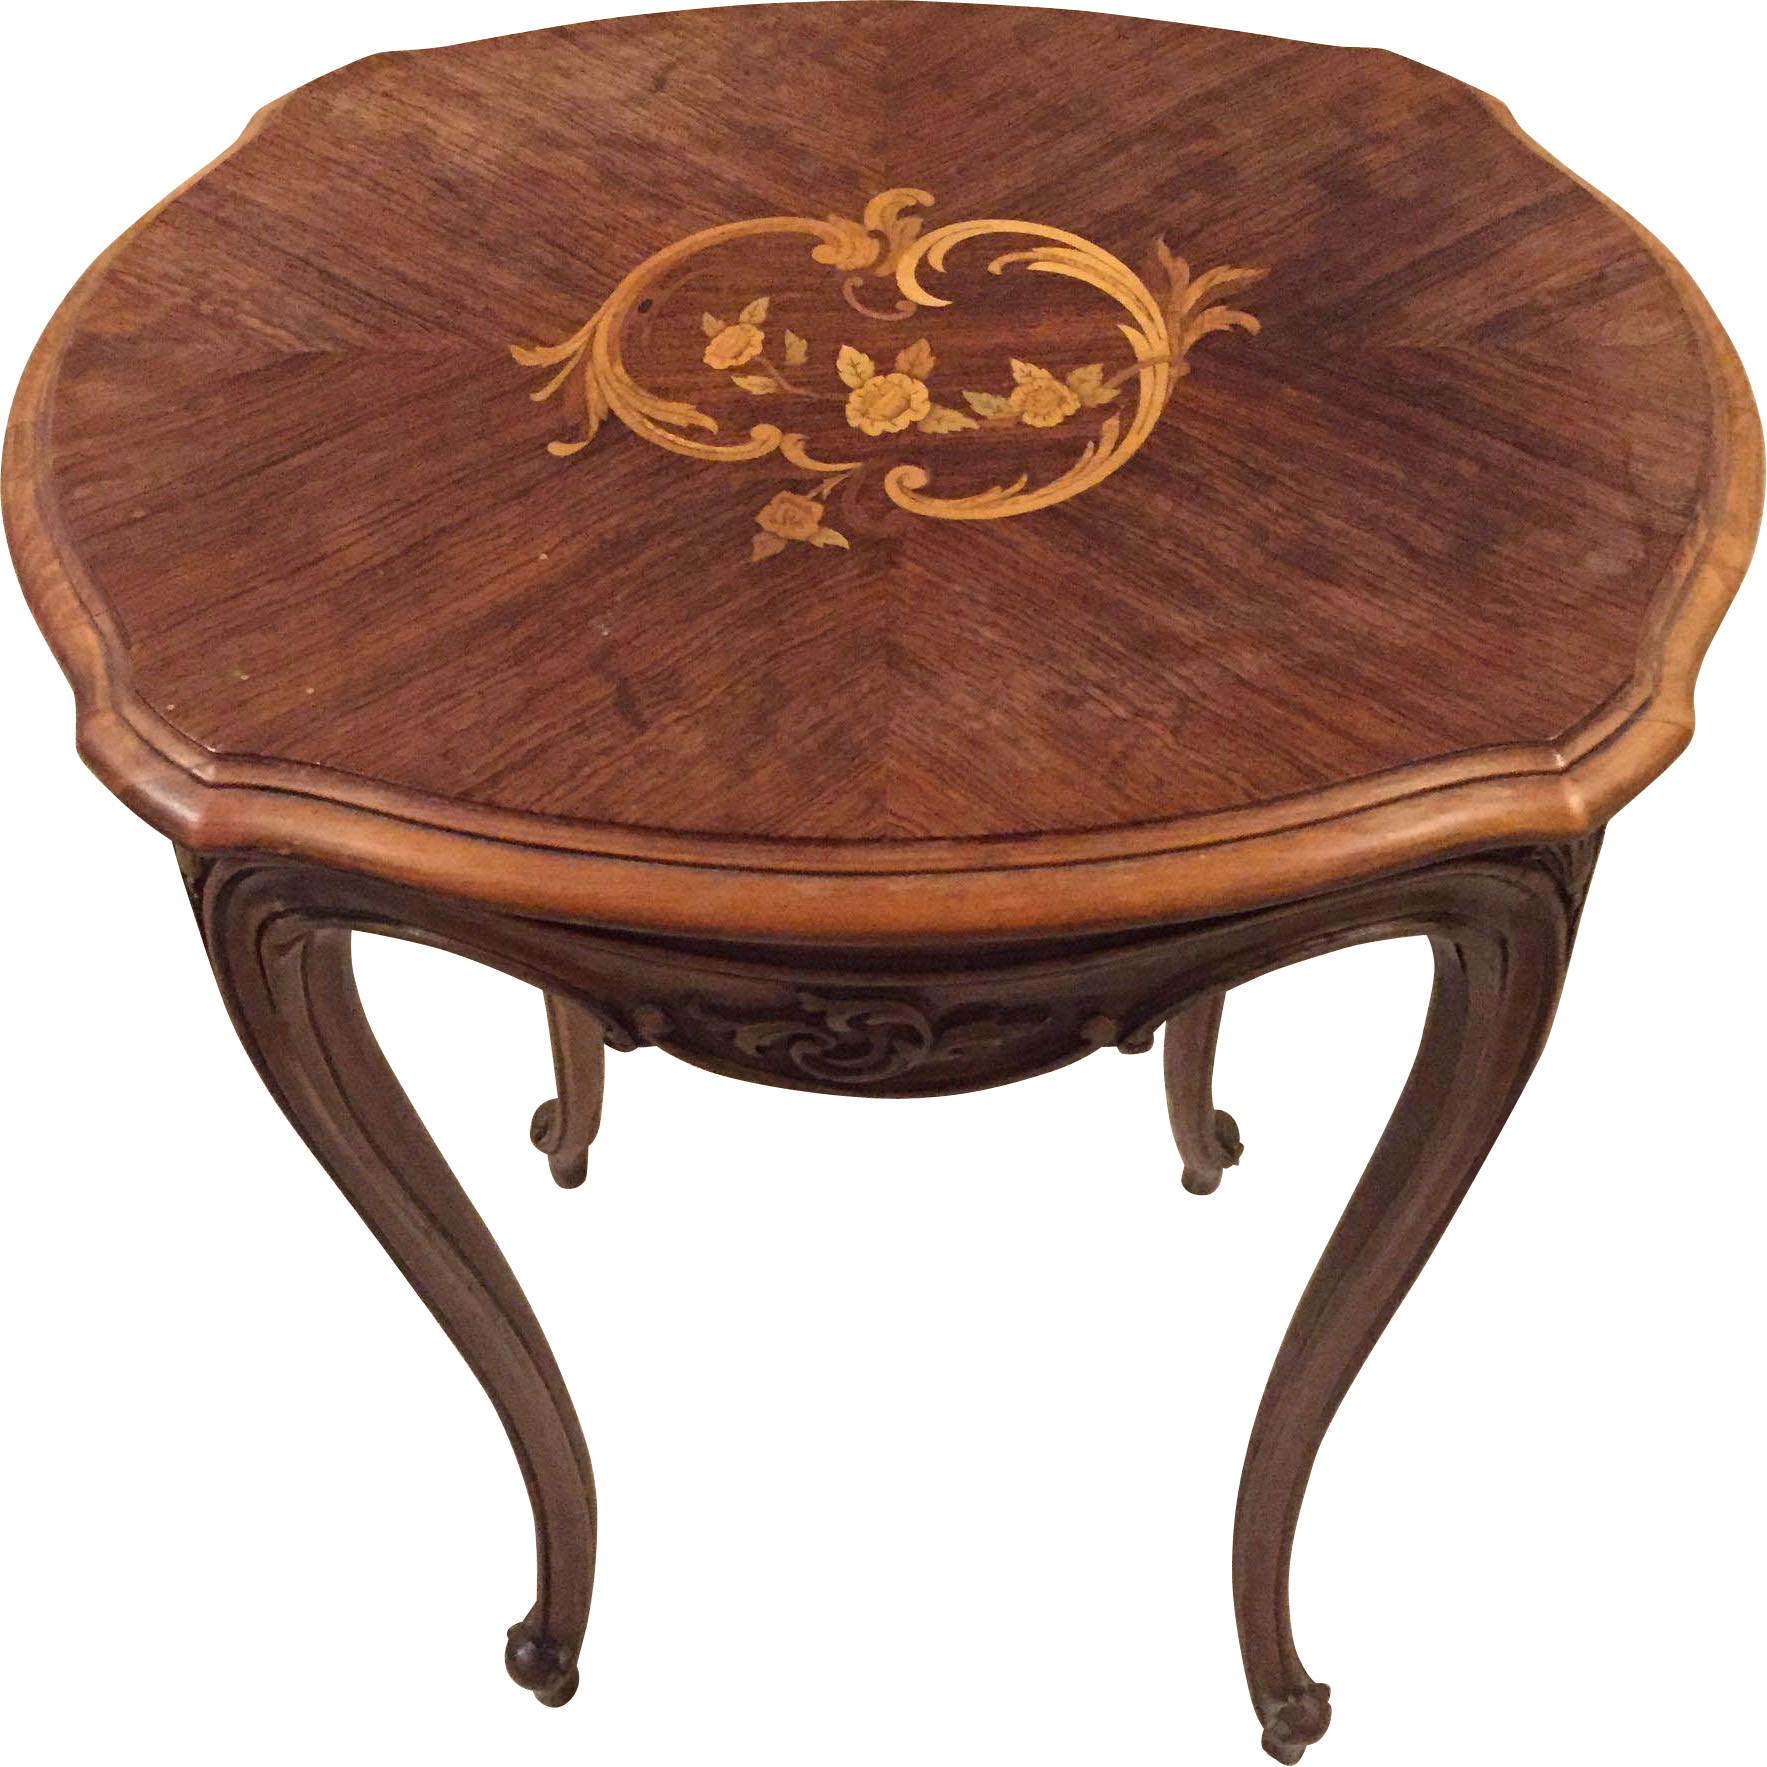 Stunning louis xv style inlaid marquetry table from chappy - Table louis xv ...